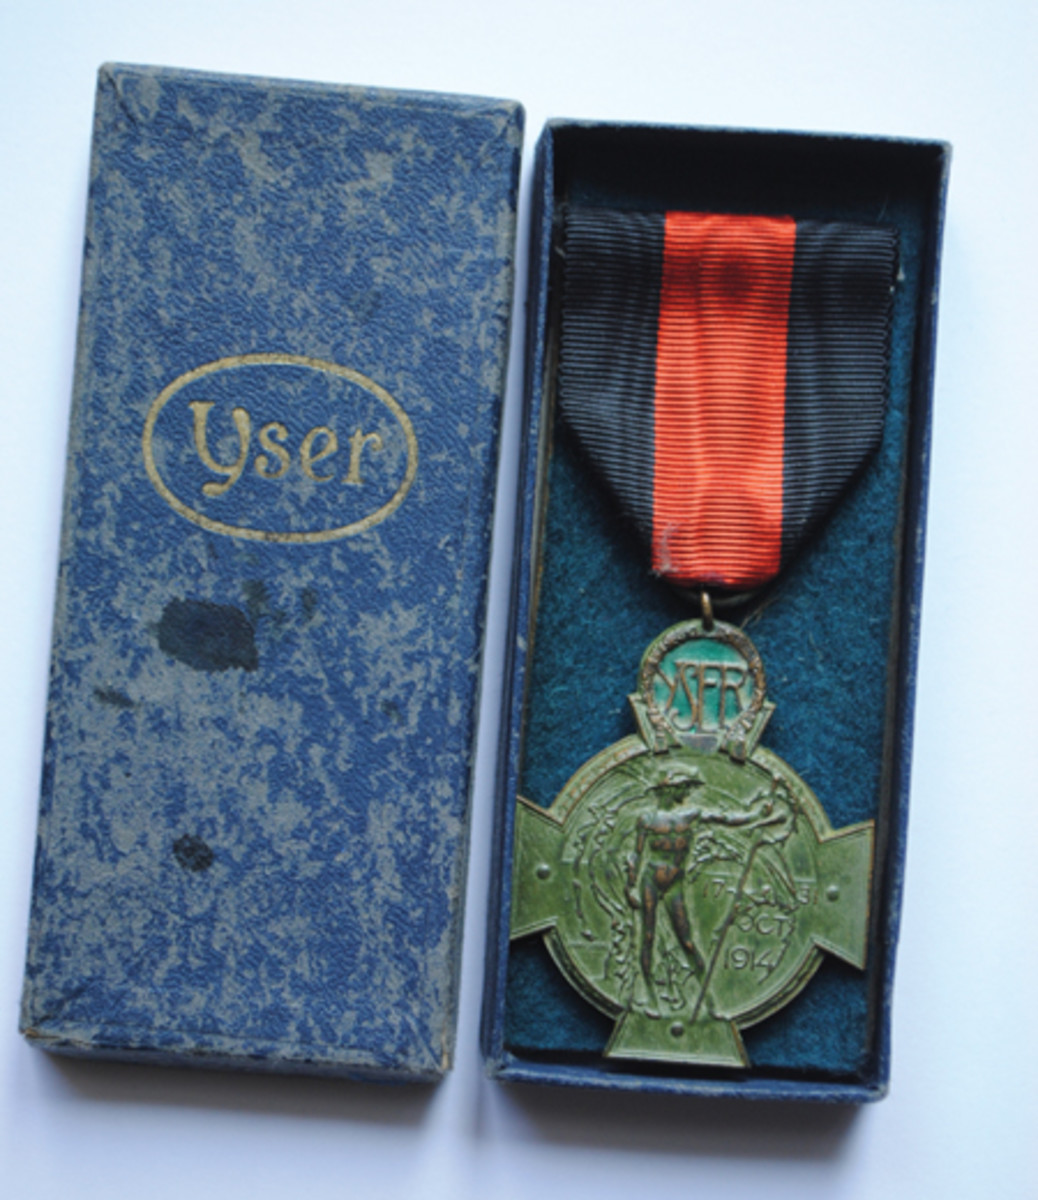 The Yser Cross from 1934 in its original presentation box. The Yser Cross were few in number but better quality than the wartime Yser Medal which preceded it.